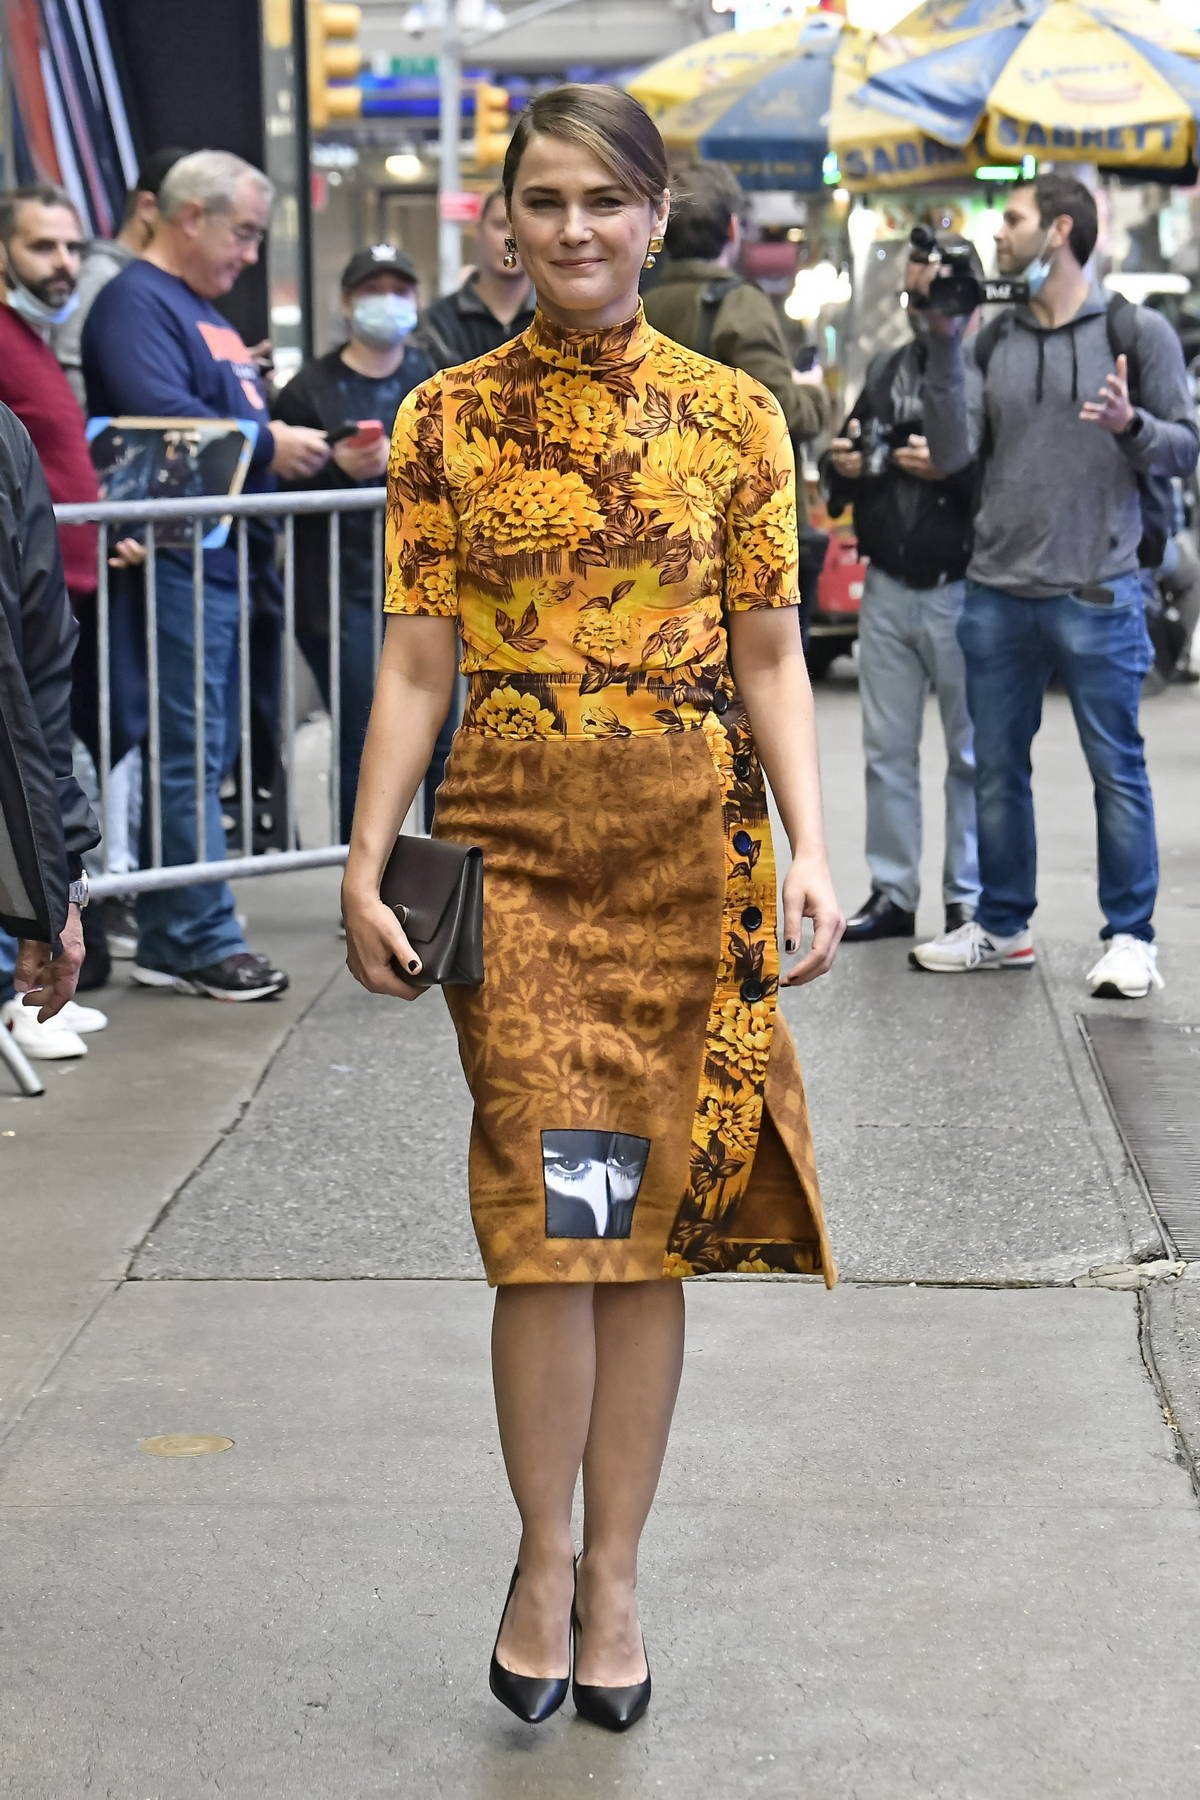 Keri Russell wears a floral print dress as she arrives for an appearance on 'Good Morning America' in New York City